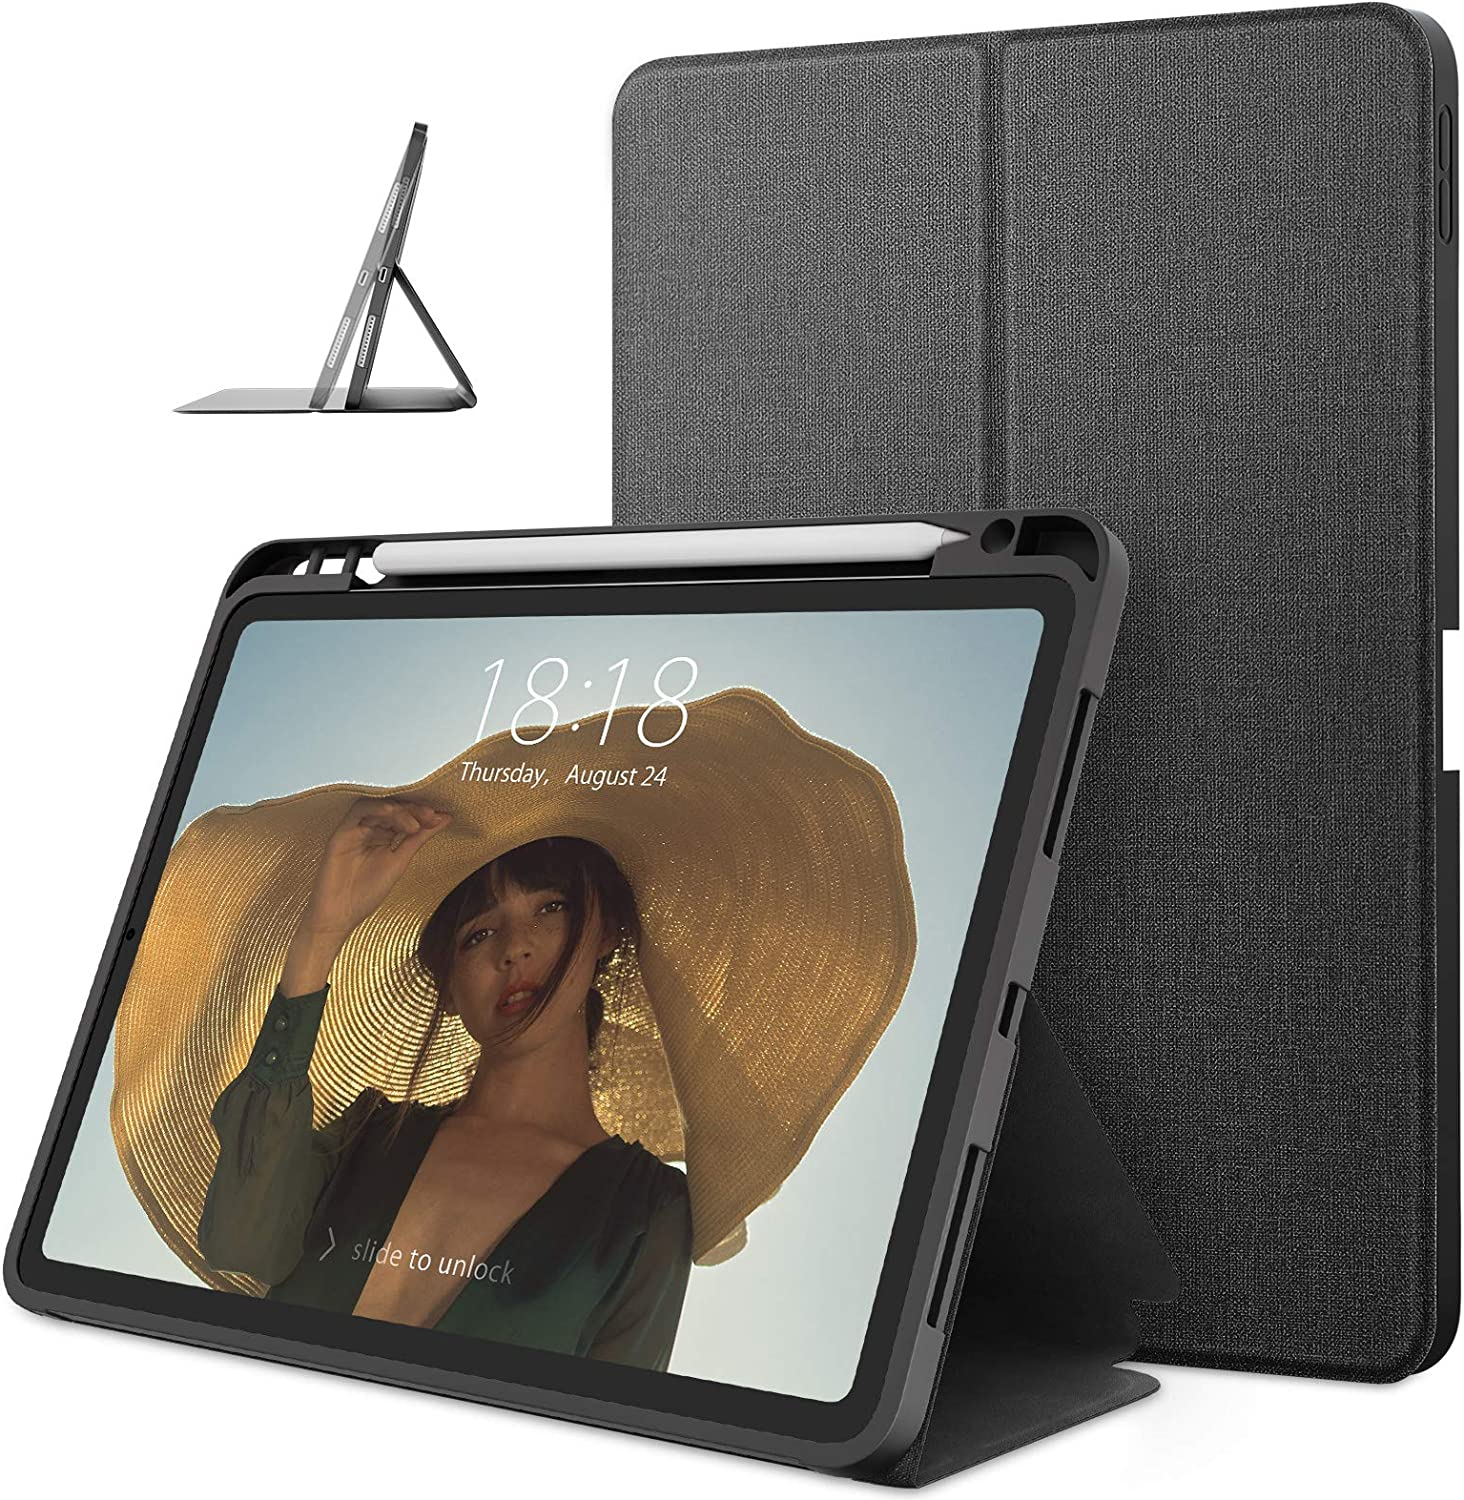 DTTO Case Phoenix Mall for Credence iPad Air Double-fold Folio 2020 4 10.9